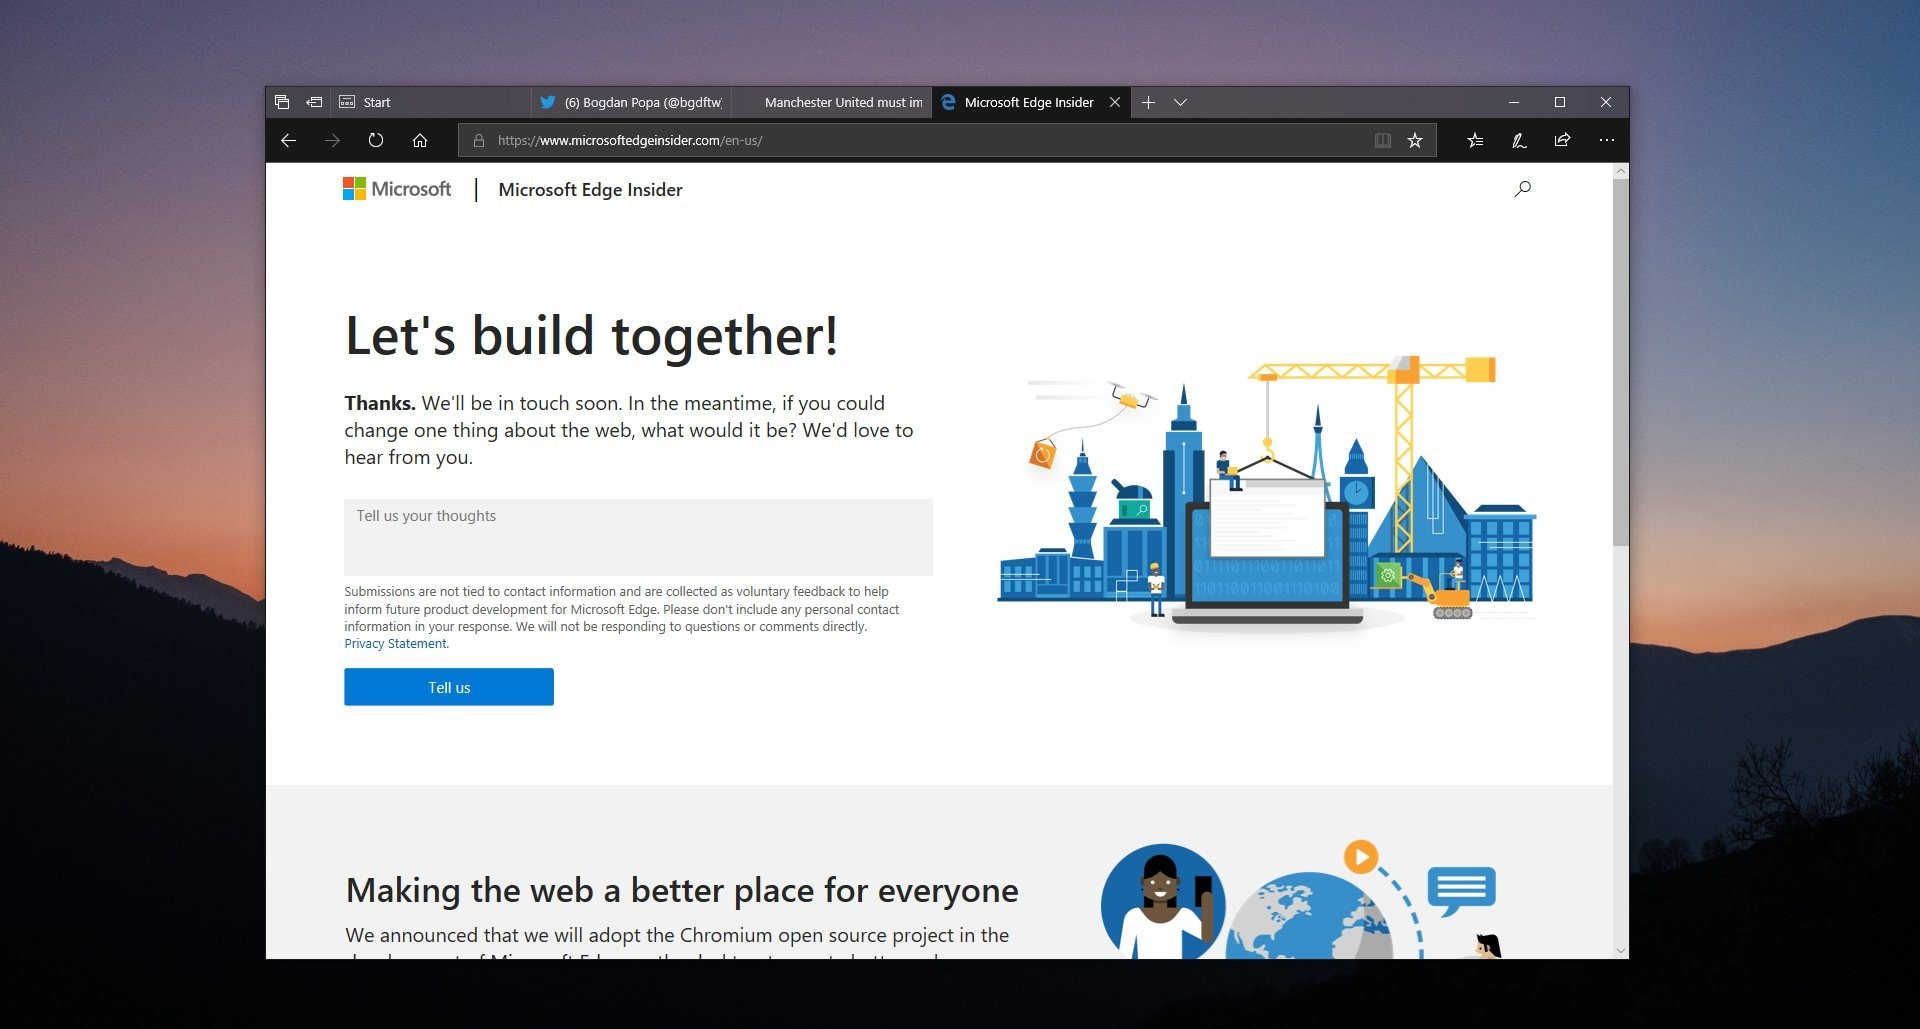 Microsoft confirms Edge will support Chrome extensions with Chromium switch